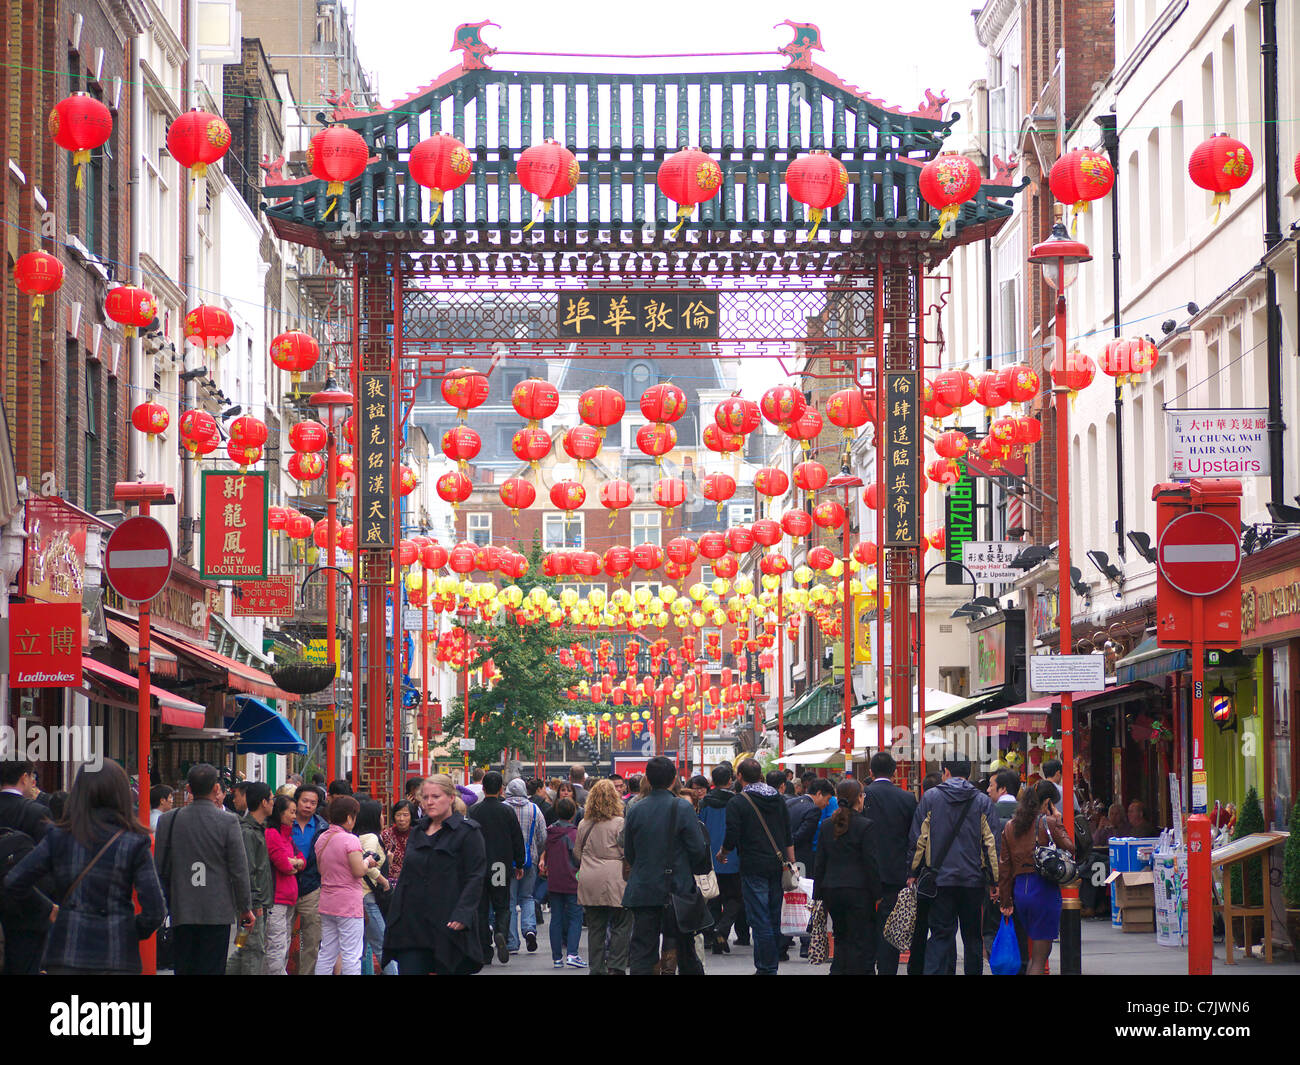 A view along Gerrard Street in London's Chinatown decorated with red lanterns hanging to celebrate the Mid-Autumn - Stock Image